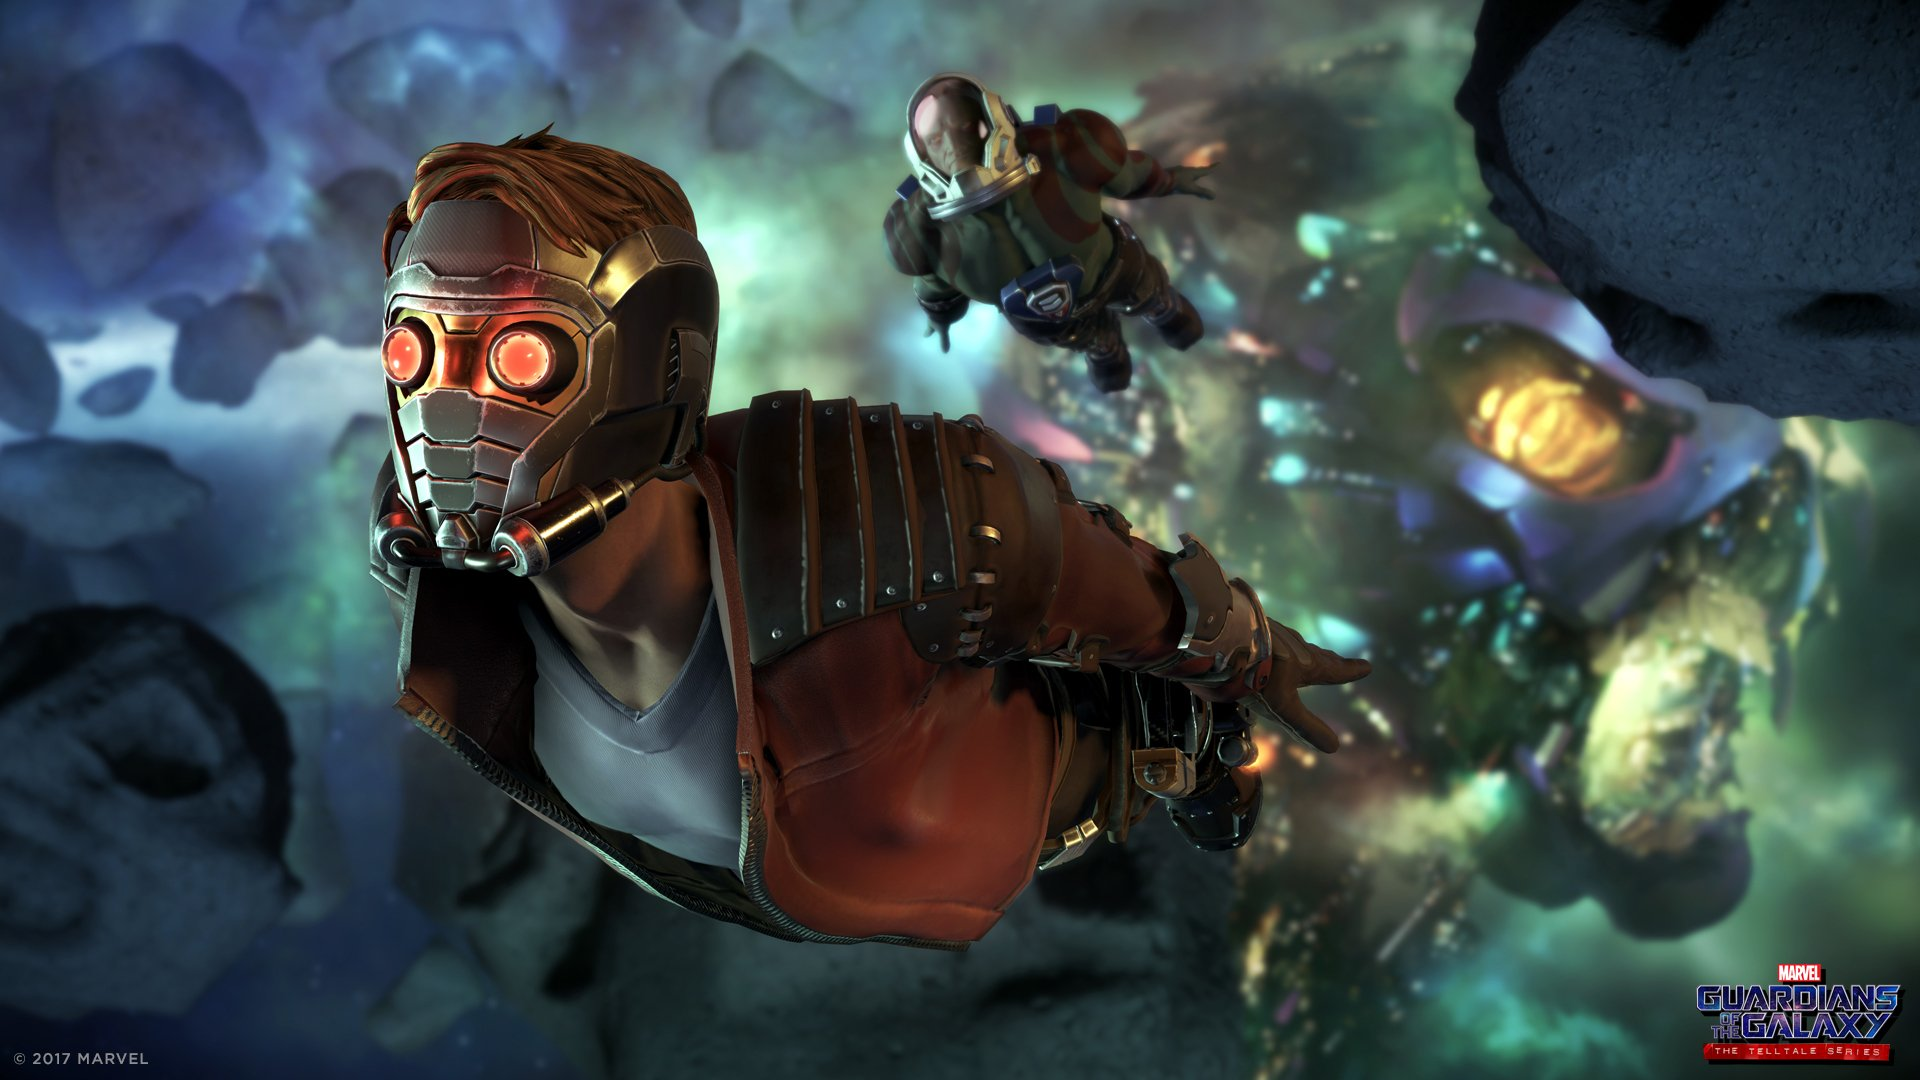 Must see Wallpaper Marvel Guardians The Galaxy - thumb-1920-810133  Graphic_807115.jpg